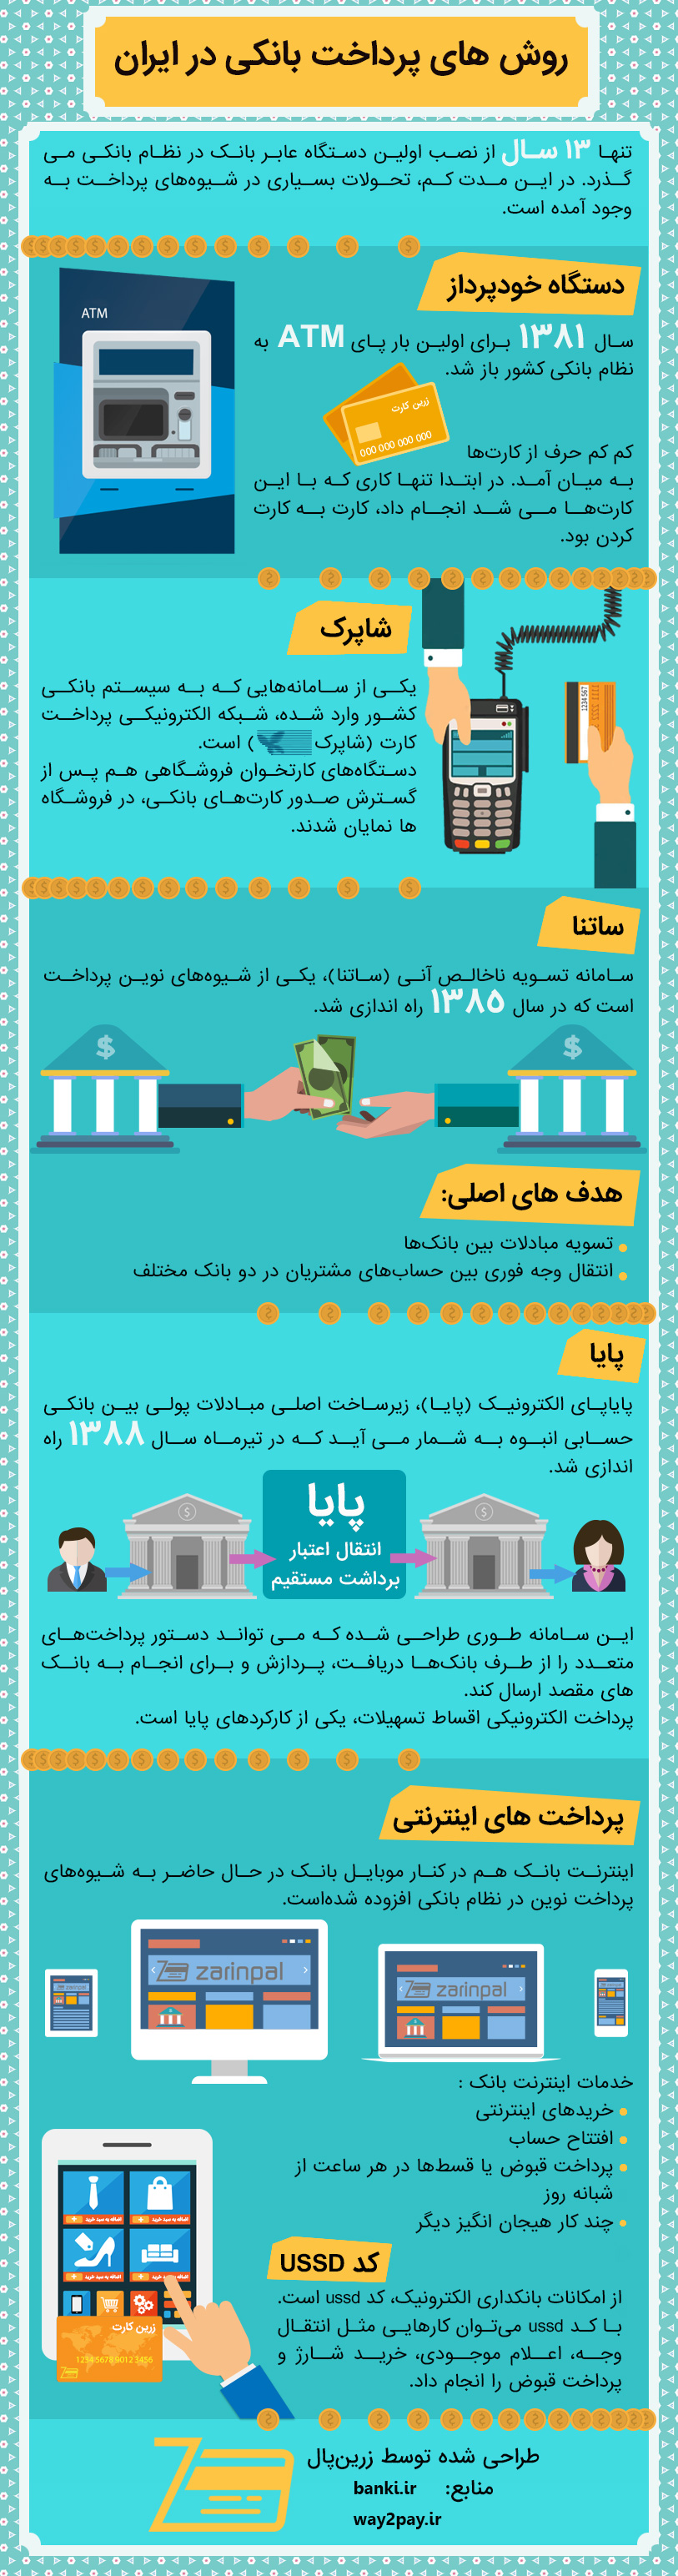 banking-payment-methods-in-iran-infographic